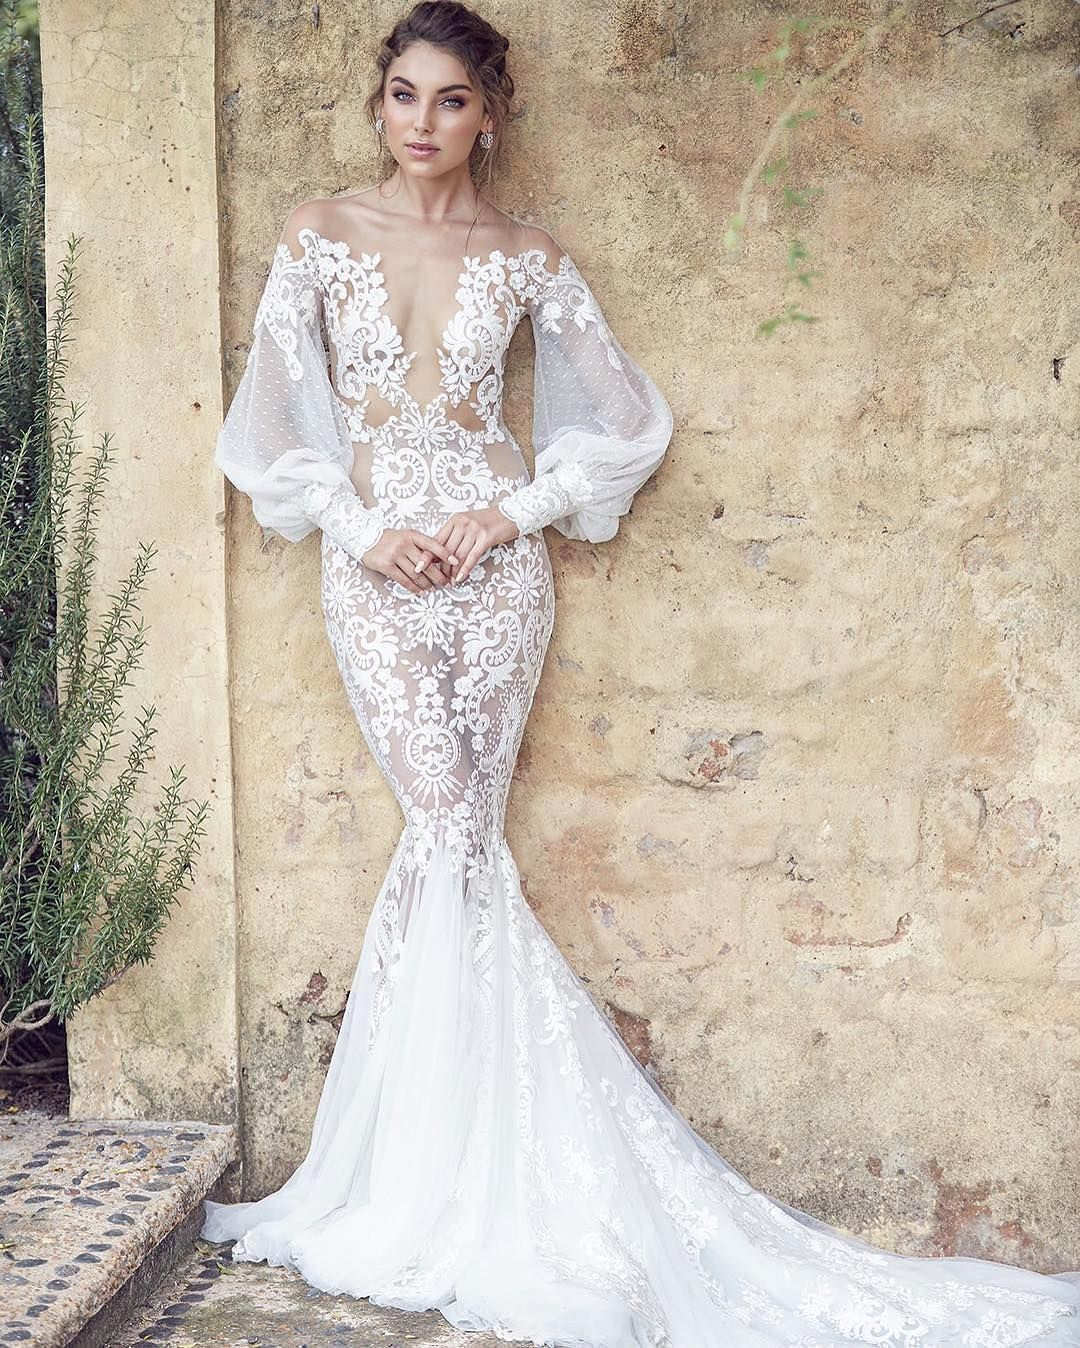 We are dying over this stunning full-sleeved @leahdagloria wedding ...